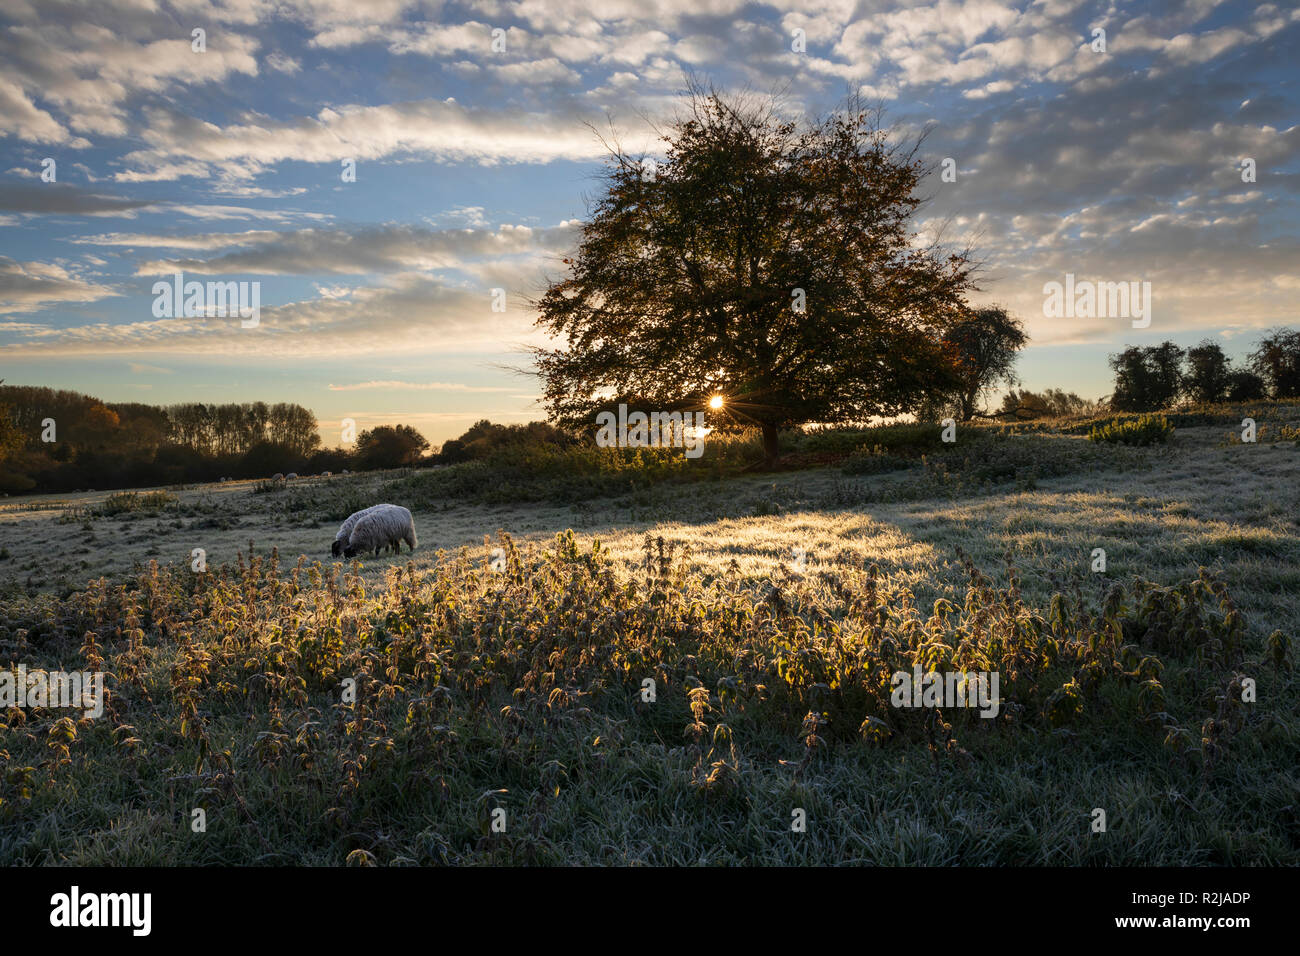 Sheep grazing in frosty field at sunrise with backlit tree and nettles, Chipping Campden, Cotswolds, Gloucestershire, England, United Kingdom, Europe - Stock Image